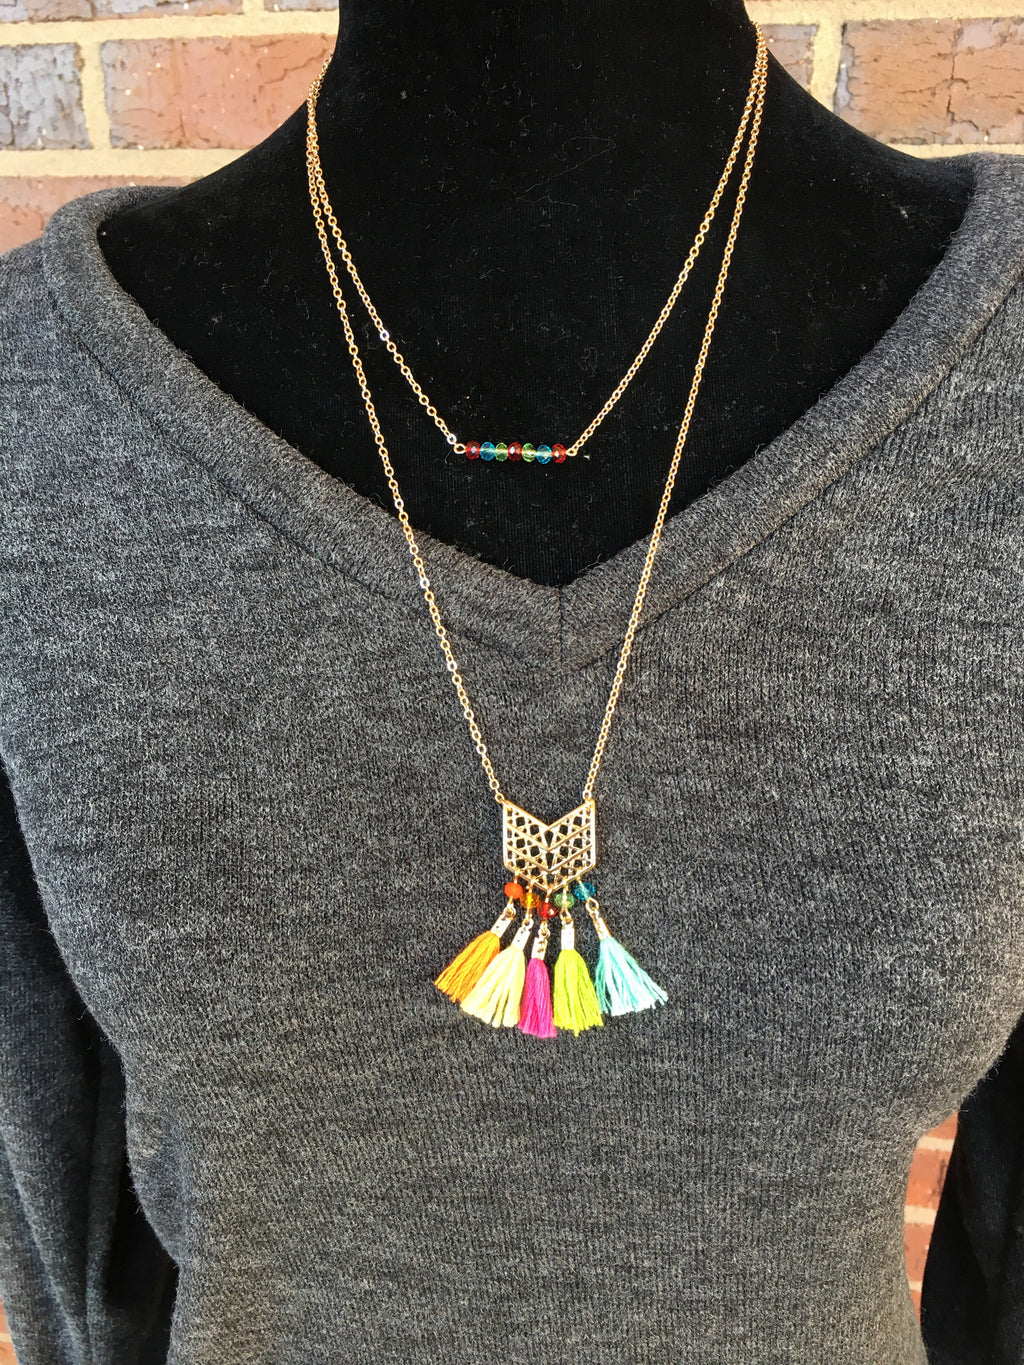 Two Layer Fiesta Necklace with Matching Earrings